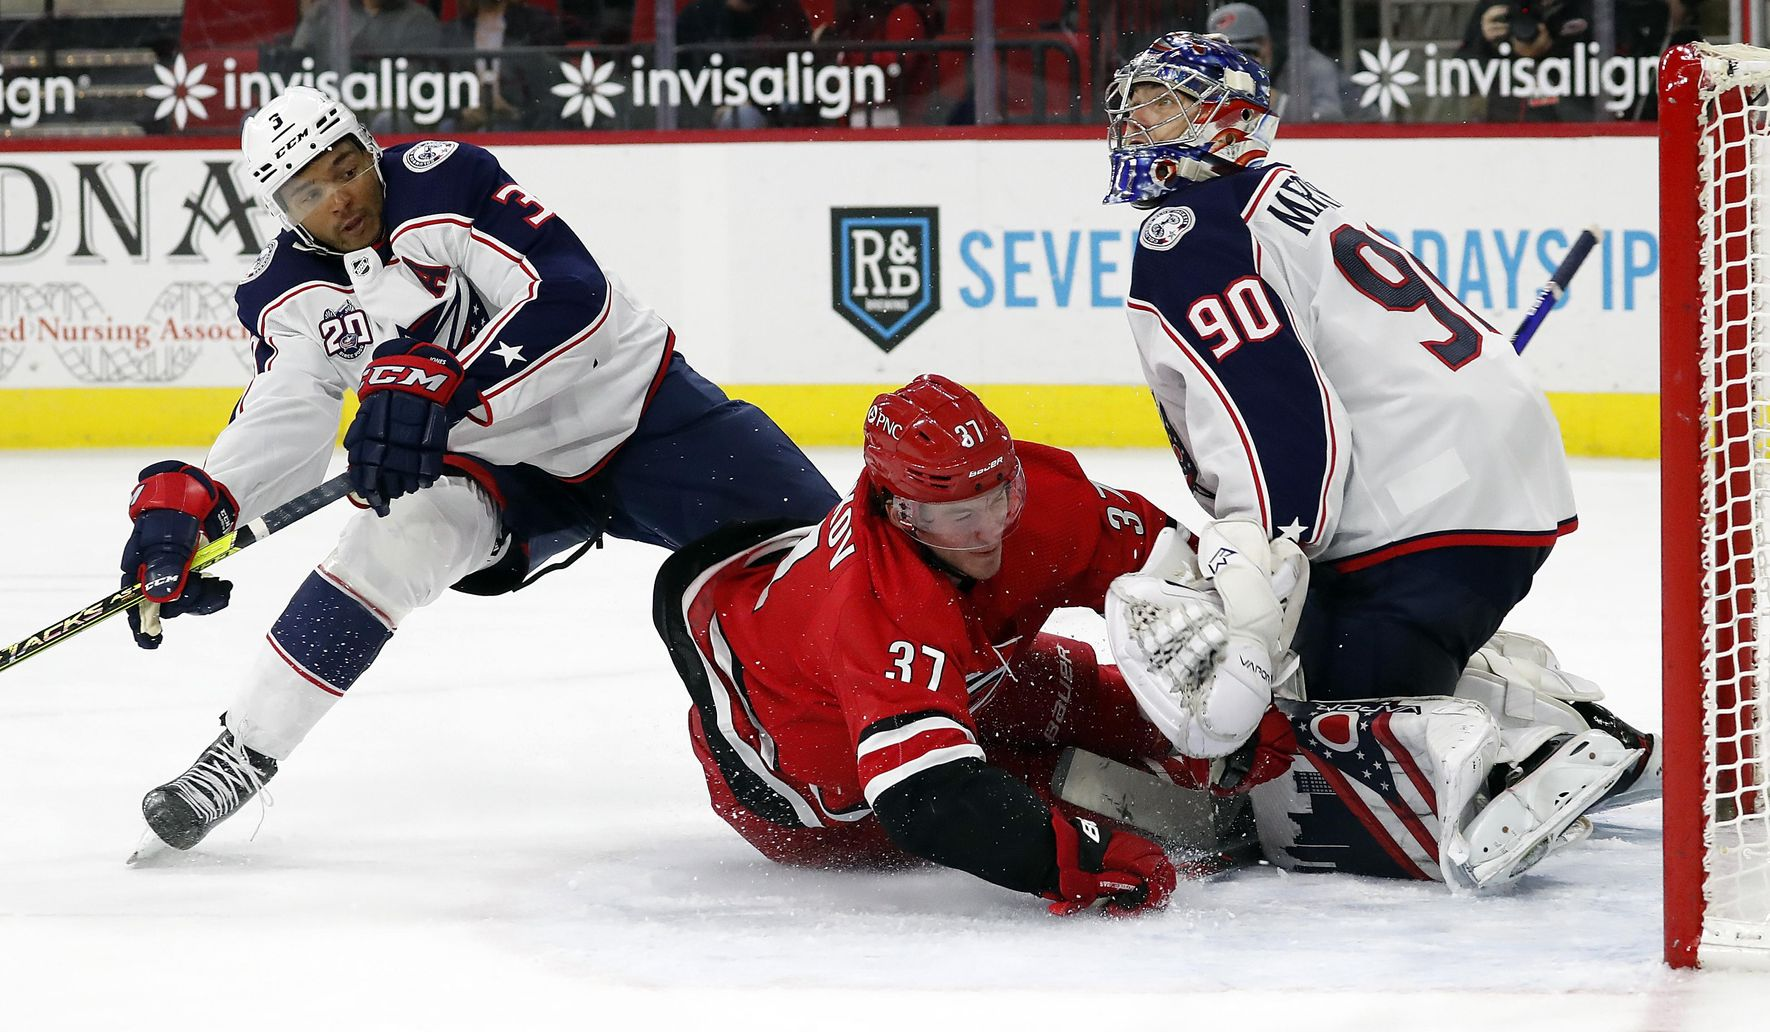 Blue_jackets_hurricanes_hockey_96116_c0-163-3905-2439_s1770x1032